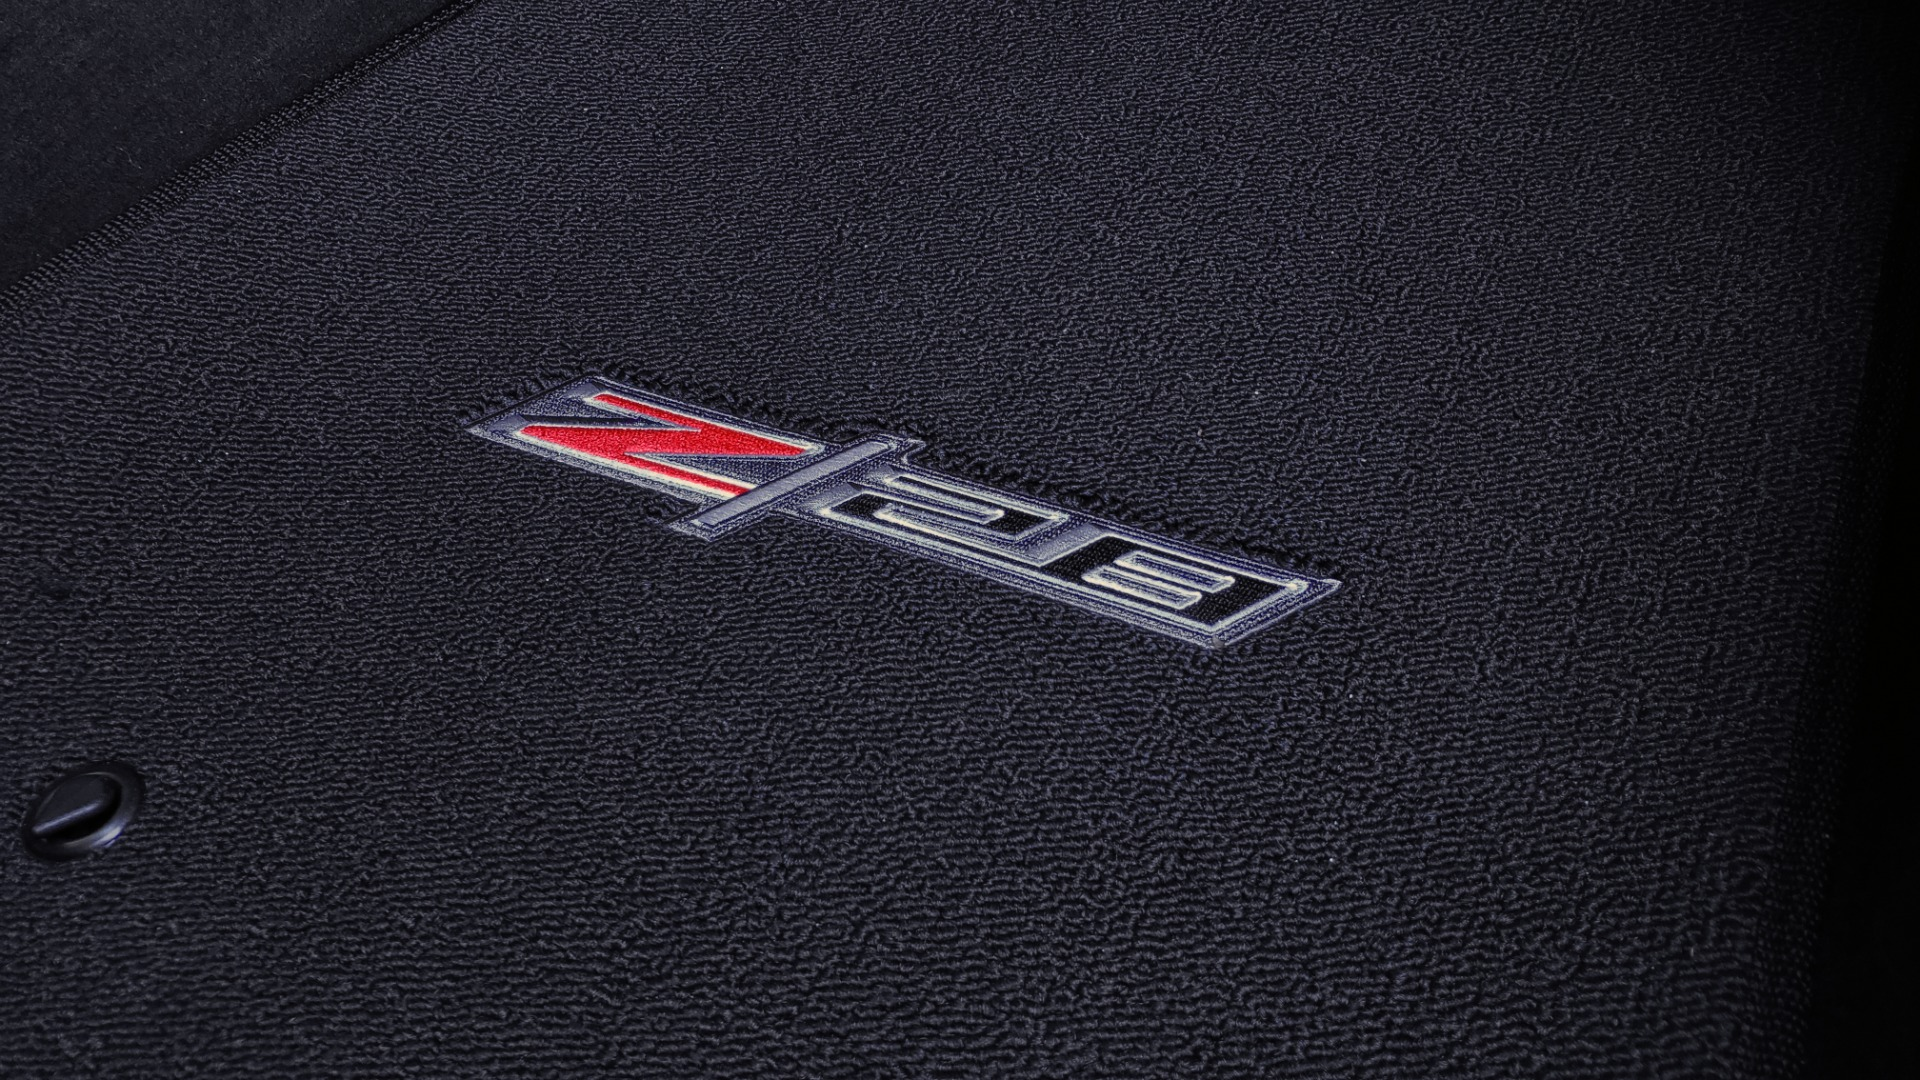 Used 2014 Chevrolet CAMARO Z/28 / 427 7.0L V8 505HP / RADIO / AIR CONDITIONING for sale Sold at Formula Imports in Charlotte NC 28227 84